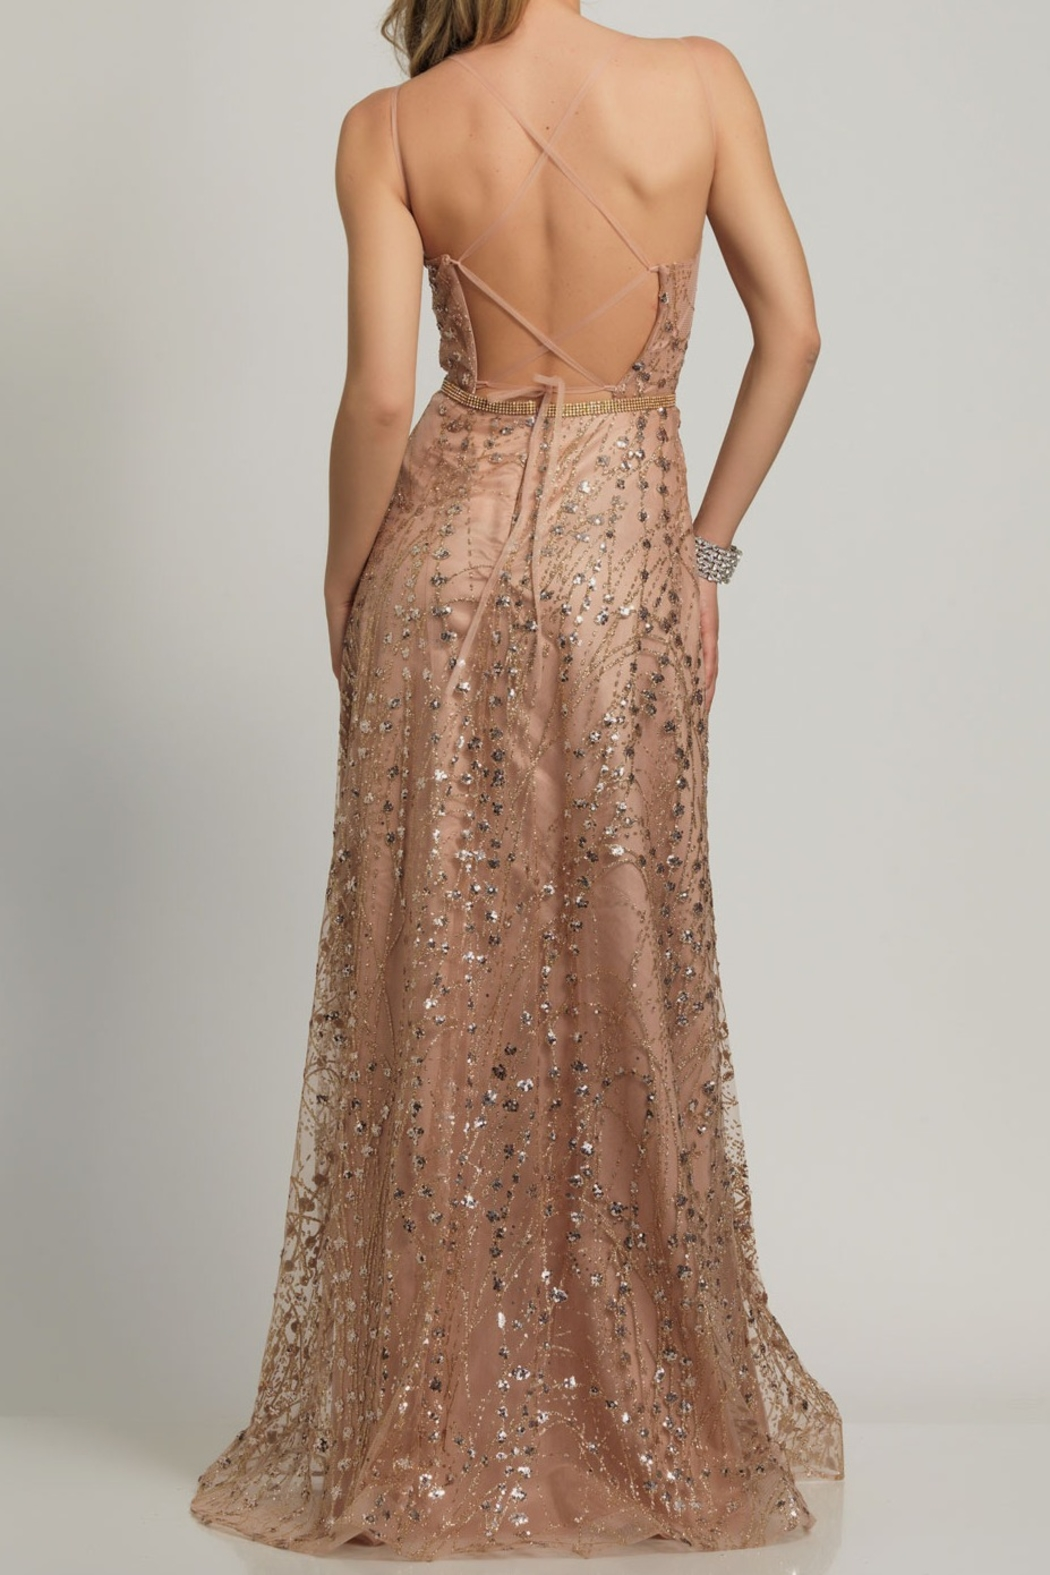 Dave and Johnny A-Line Sheer Tie Back Gown - Front Full Image